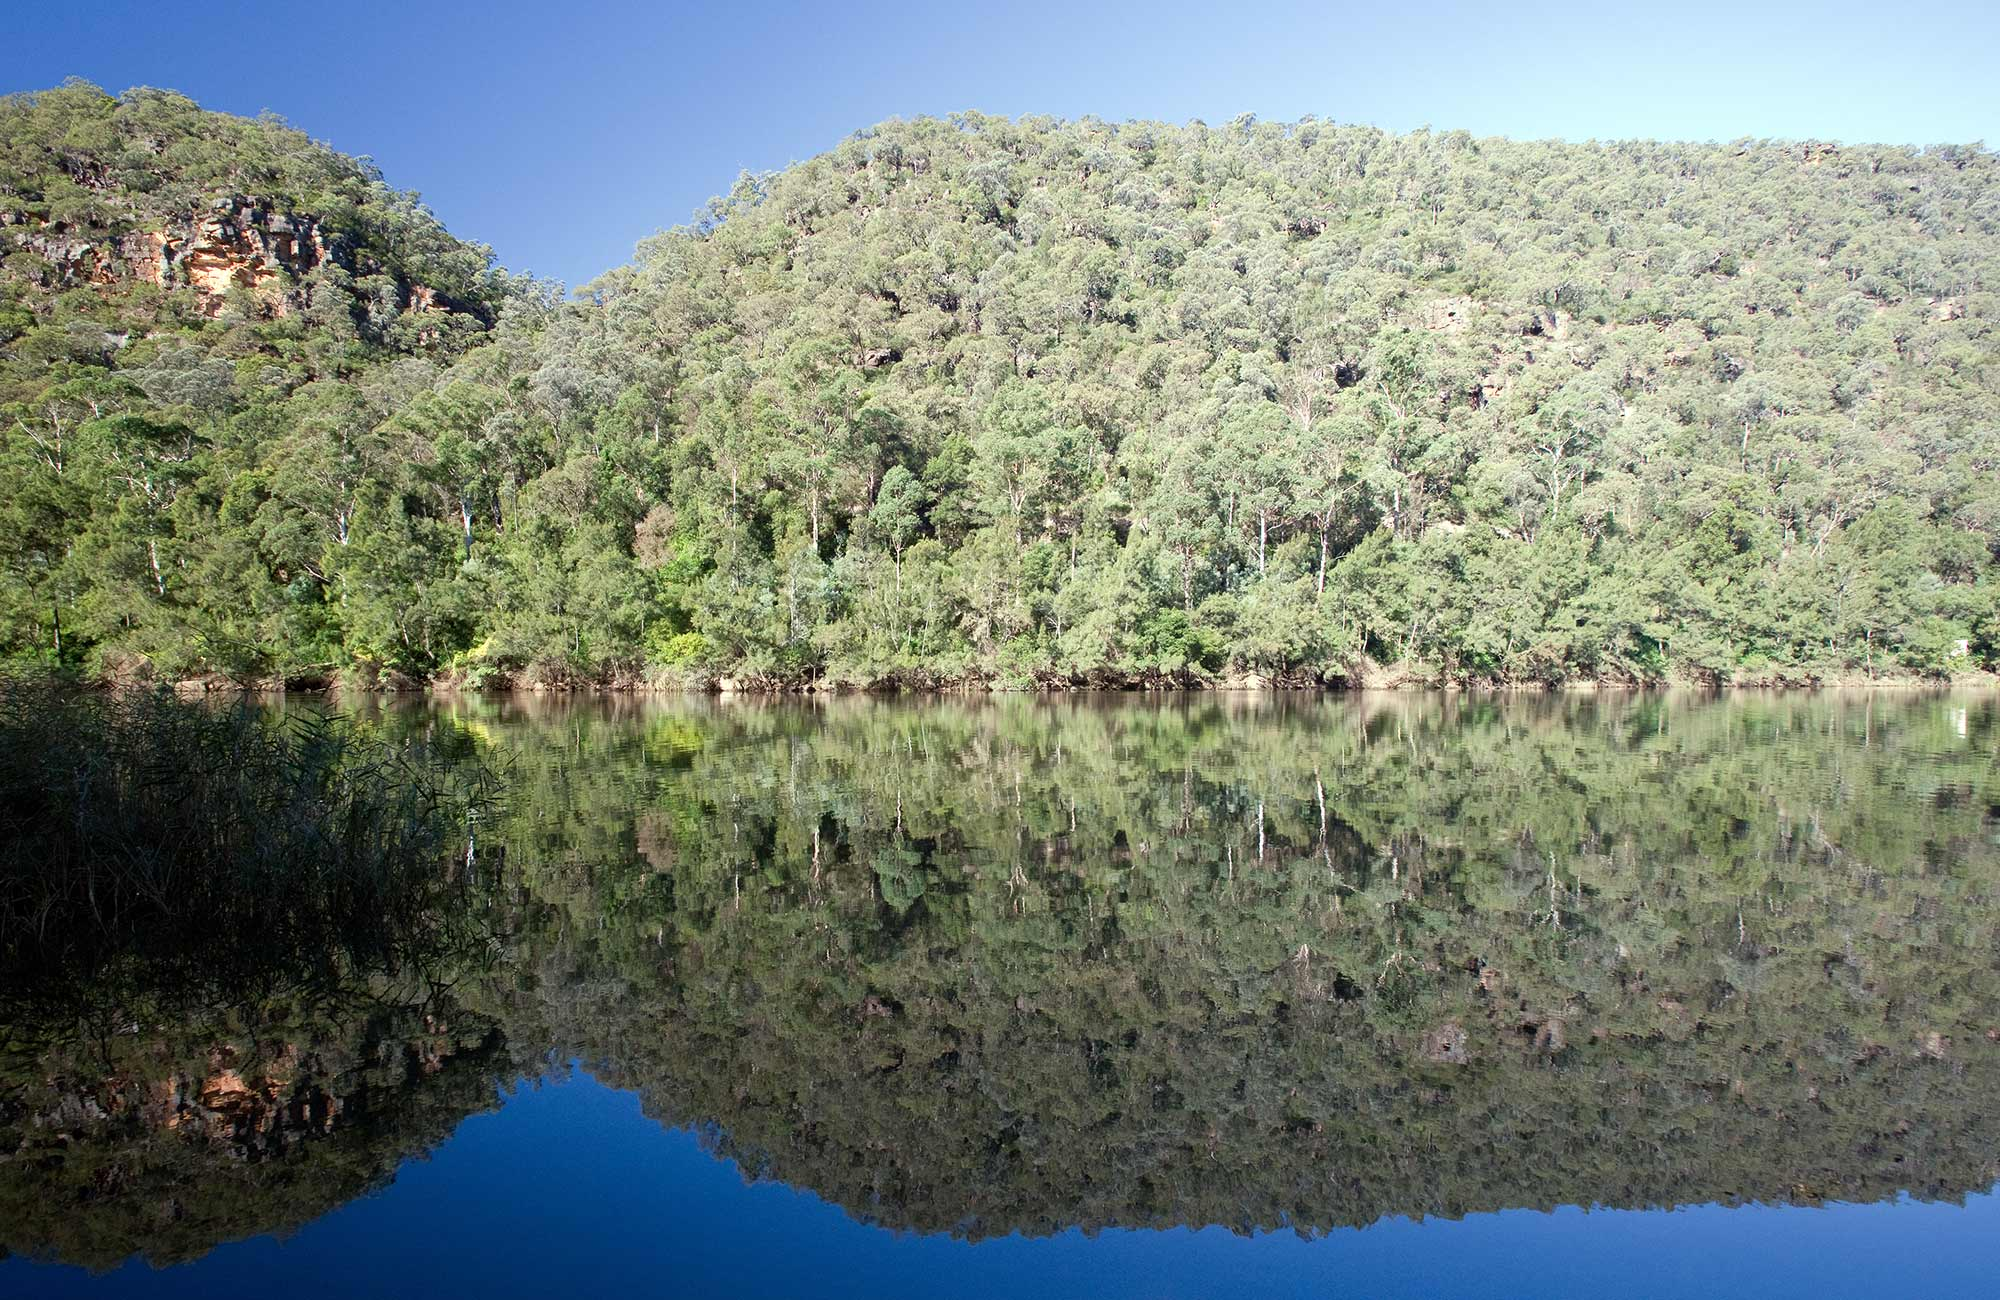 Nepean river reflection, Blue Mountains National Park. Photo: Nick Cubbin/OEH